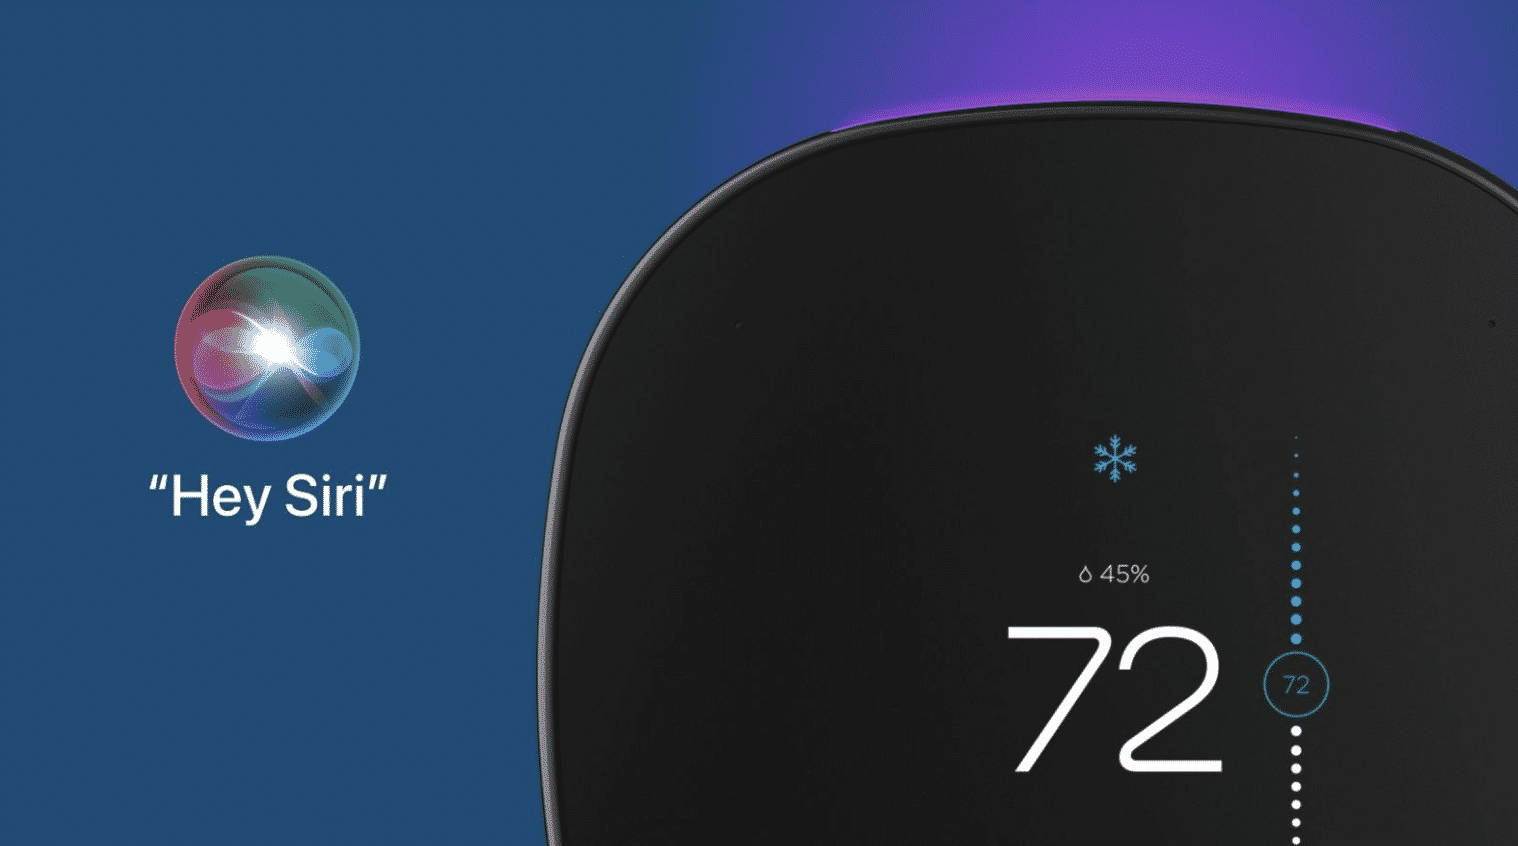 'Hey Siri' functionality arriving on Ecobee SmartThermostat via software update